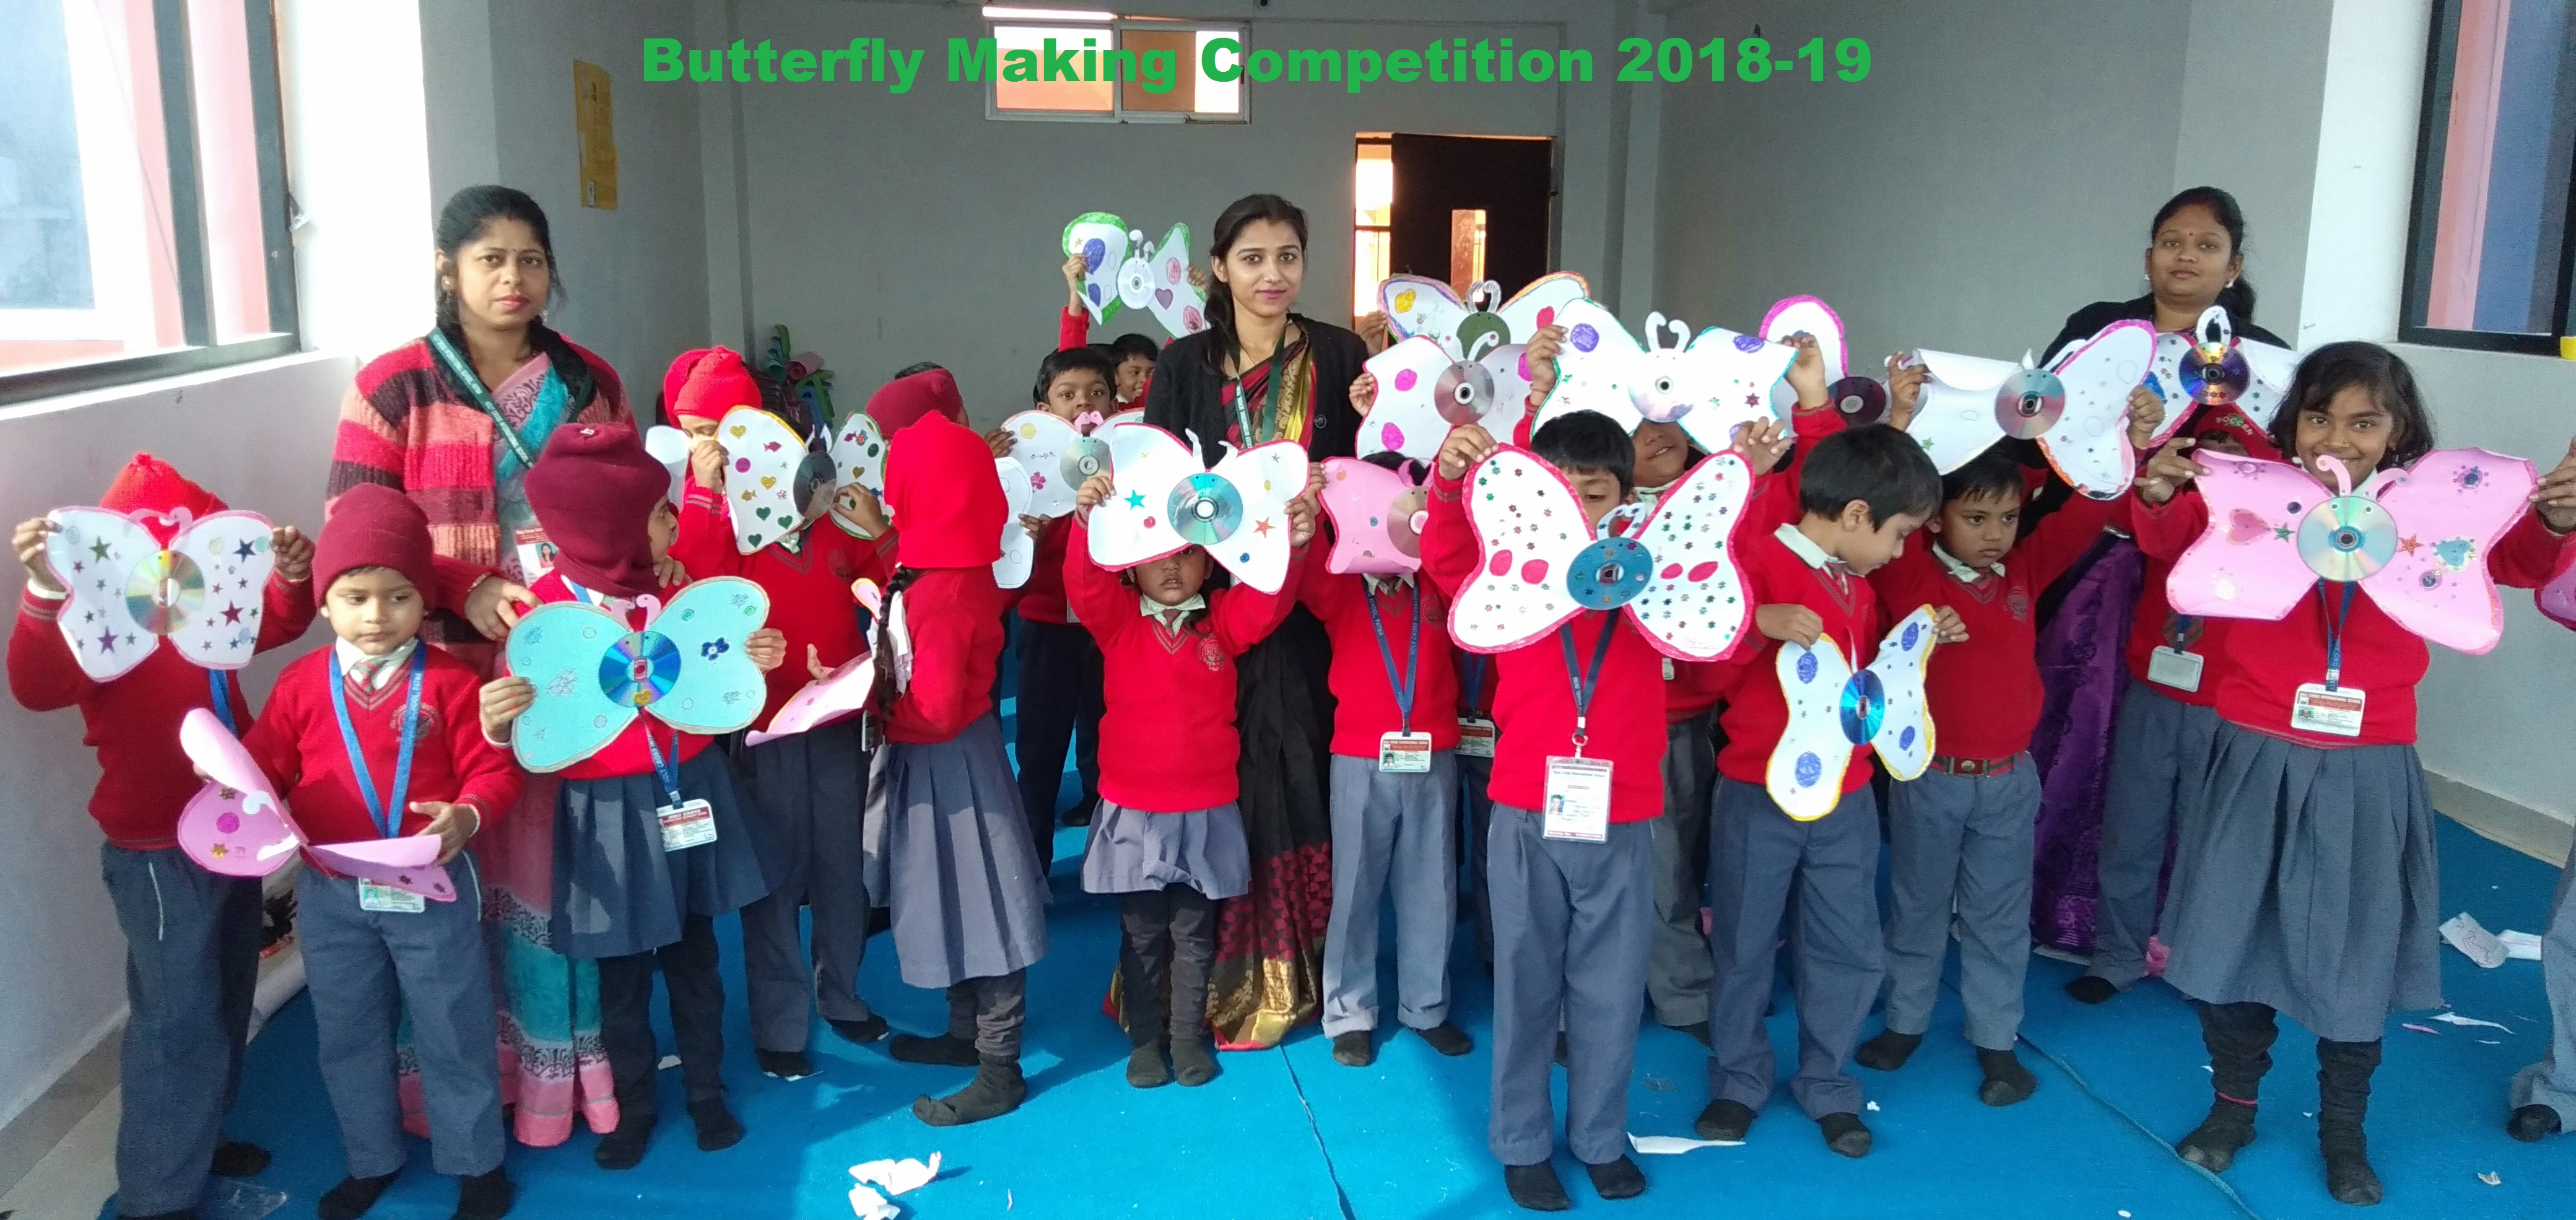 Butterfly Making Competition 2018-19